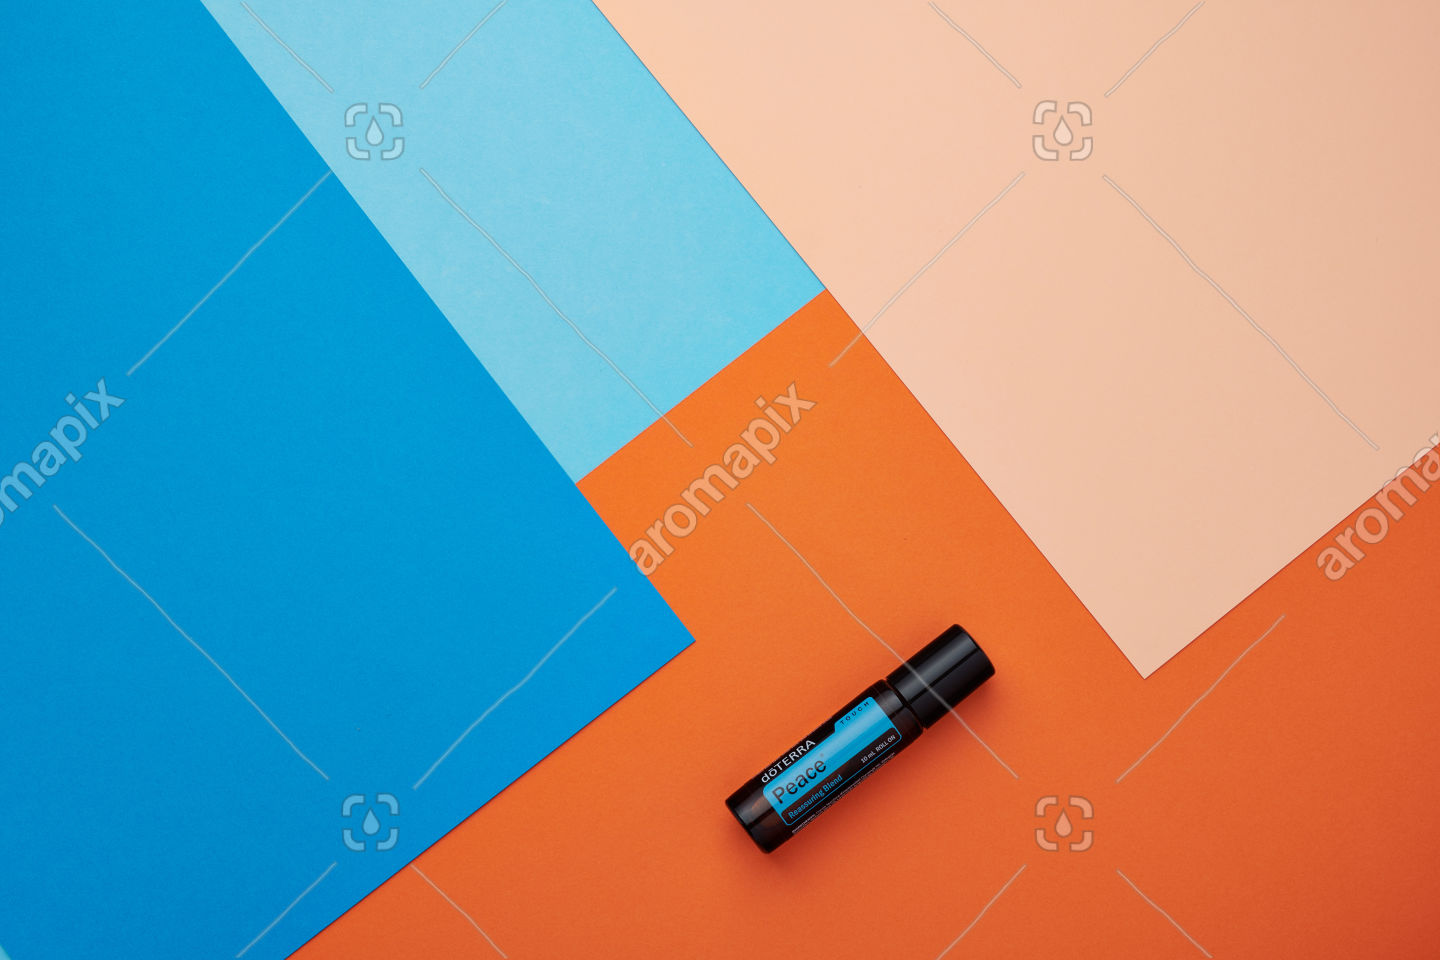 doTERRA Peace Touch on a blue and orange background